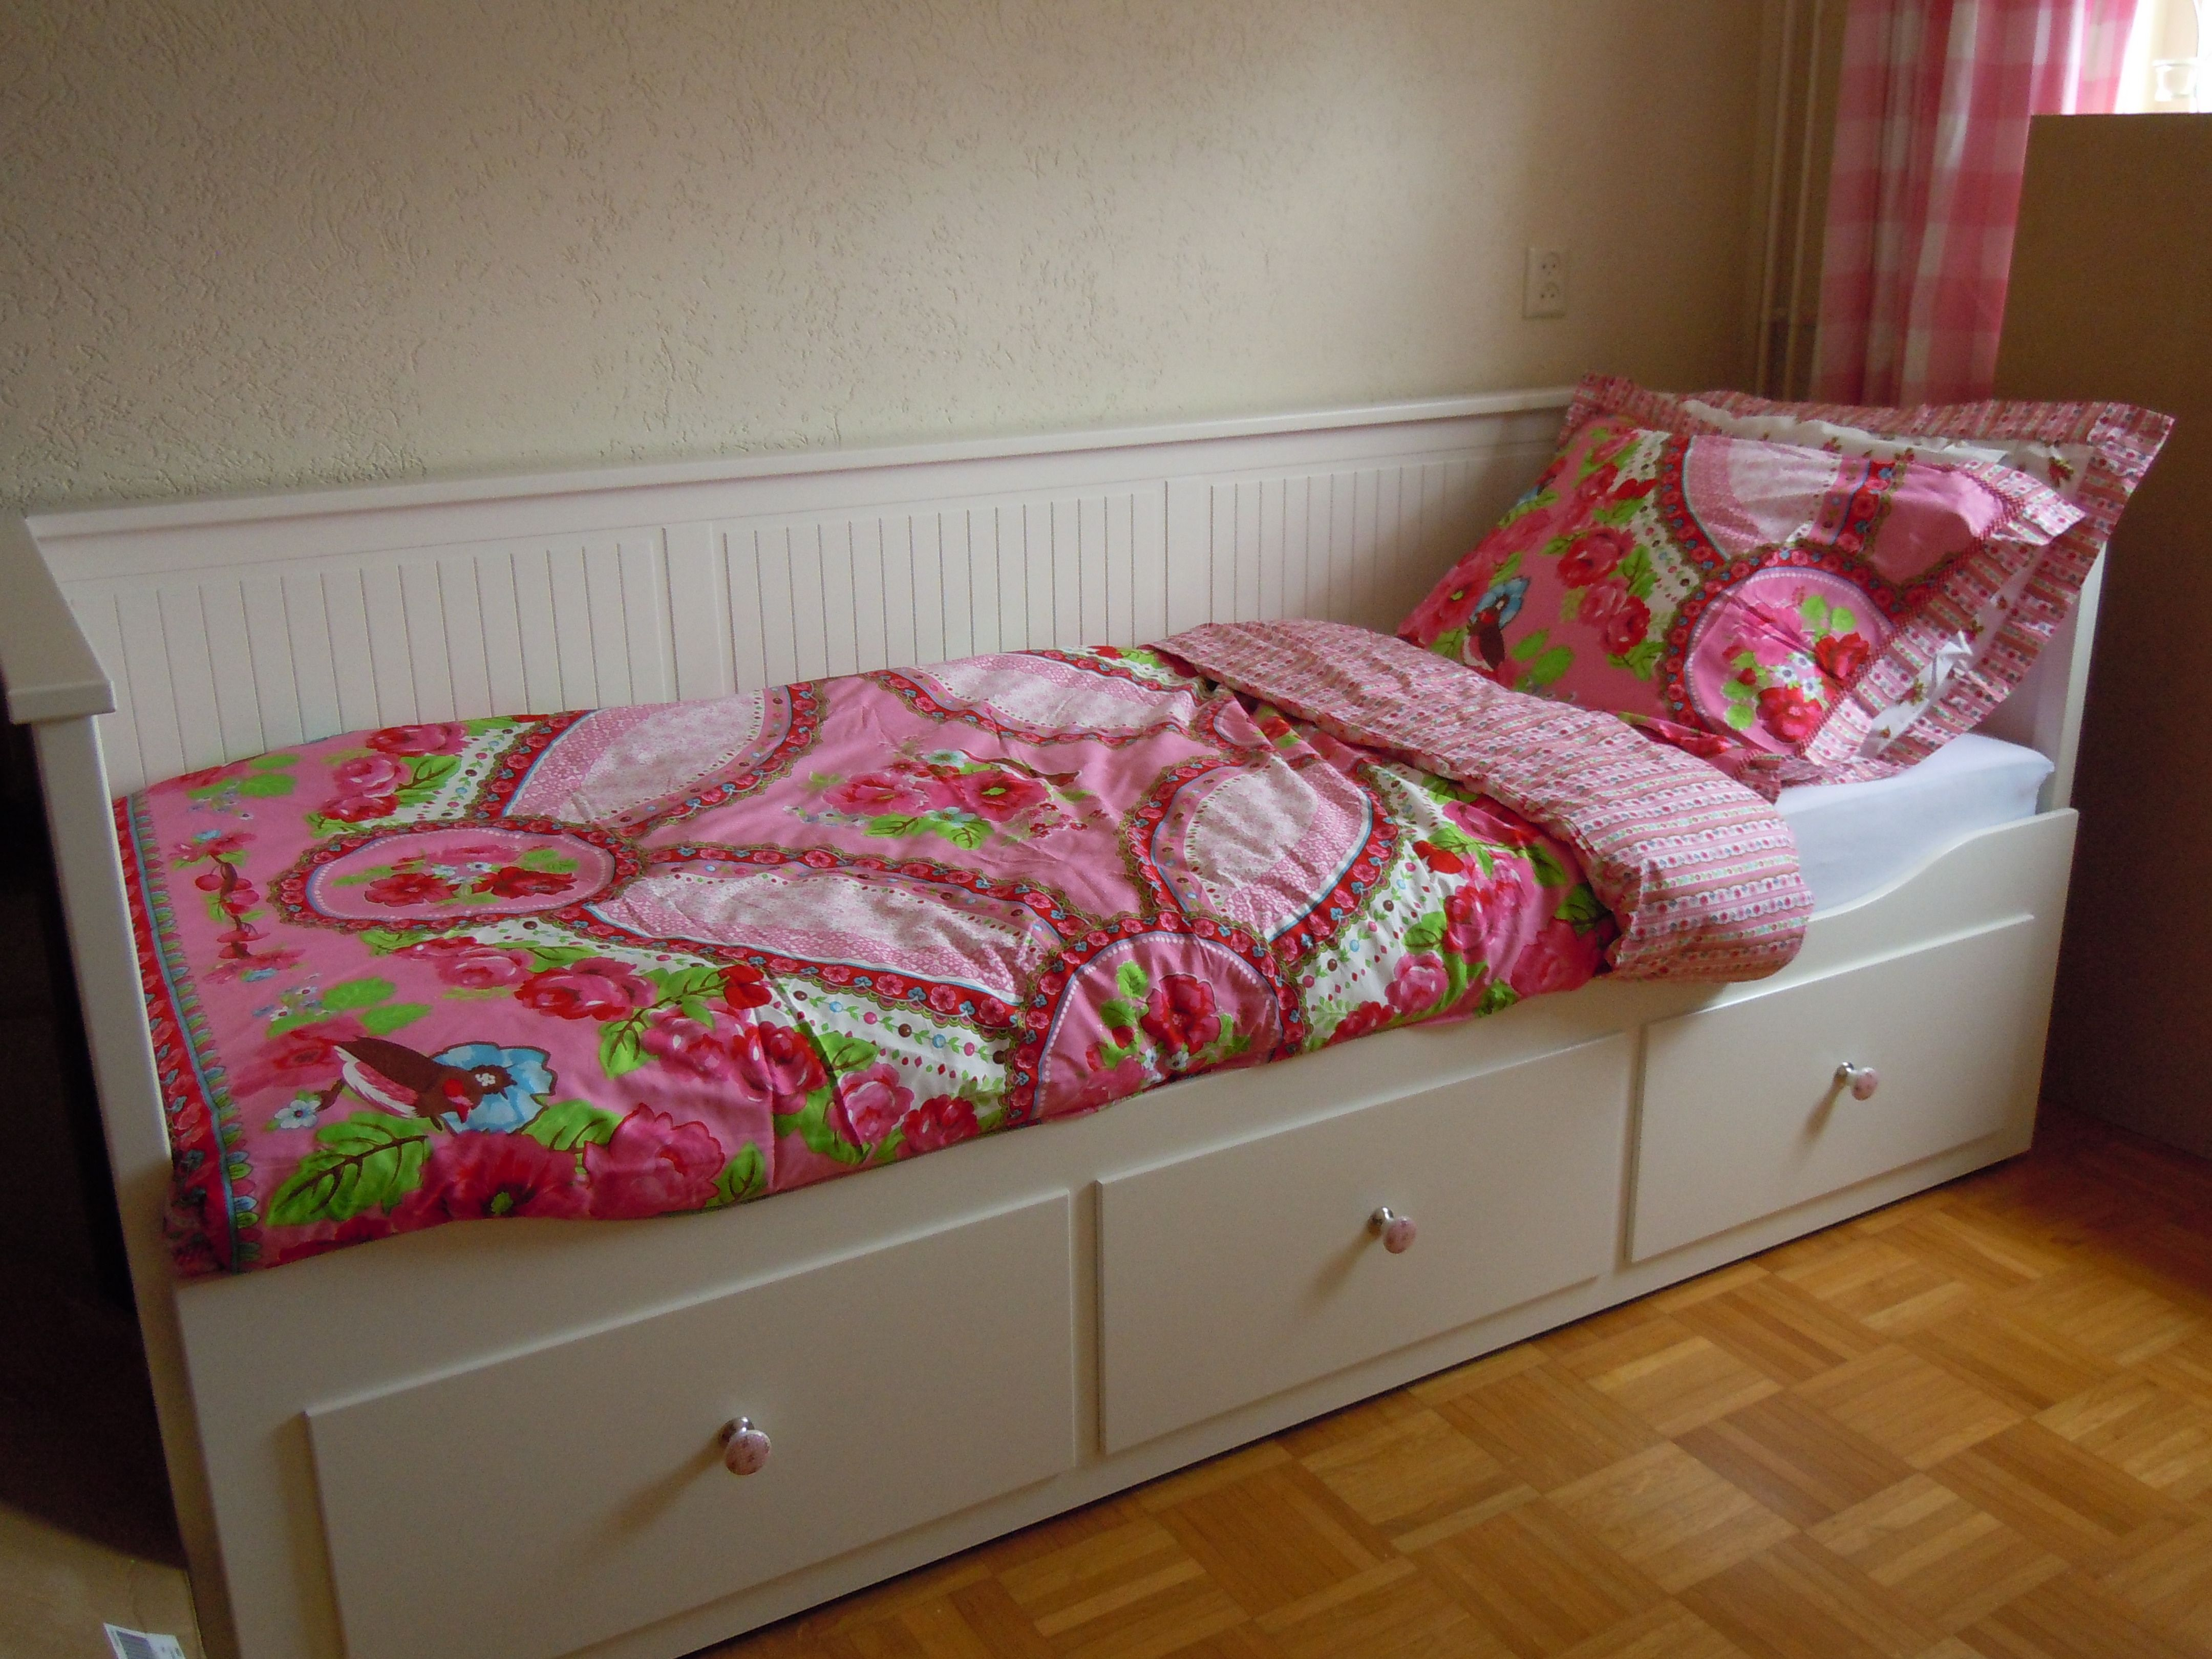 Ikea Bed Sheets Hk